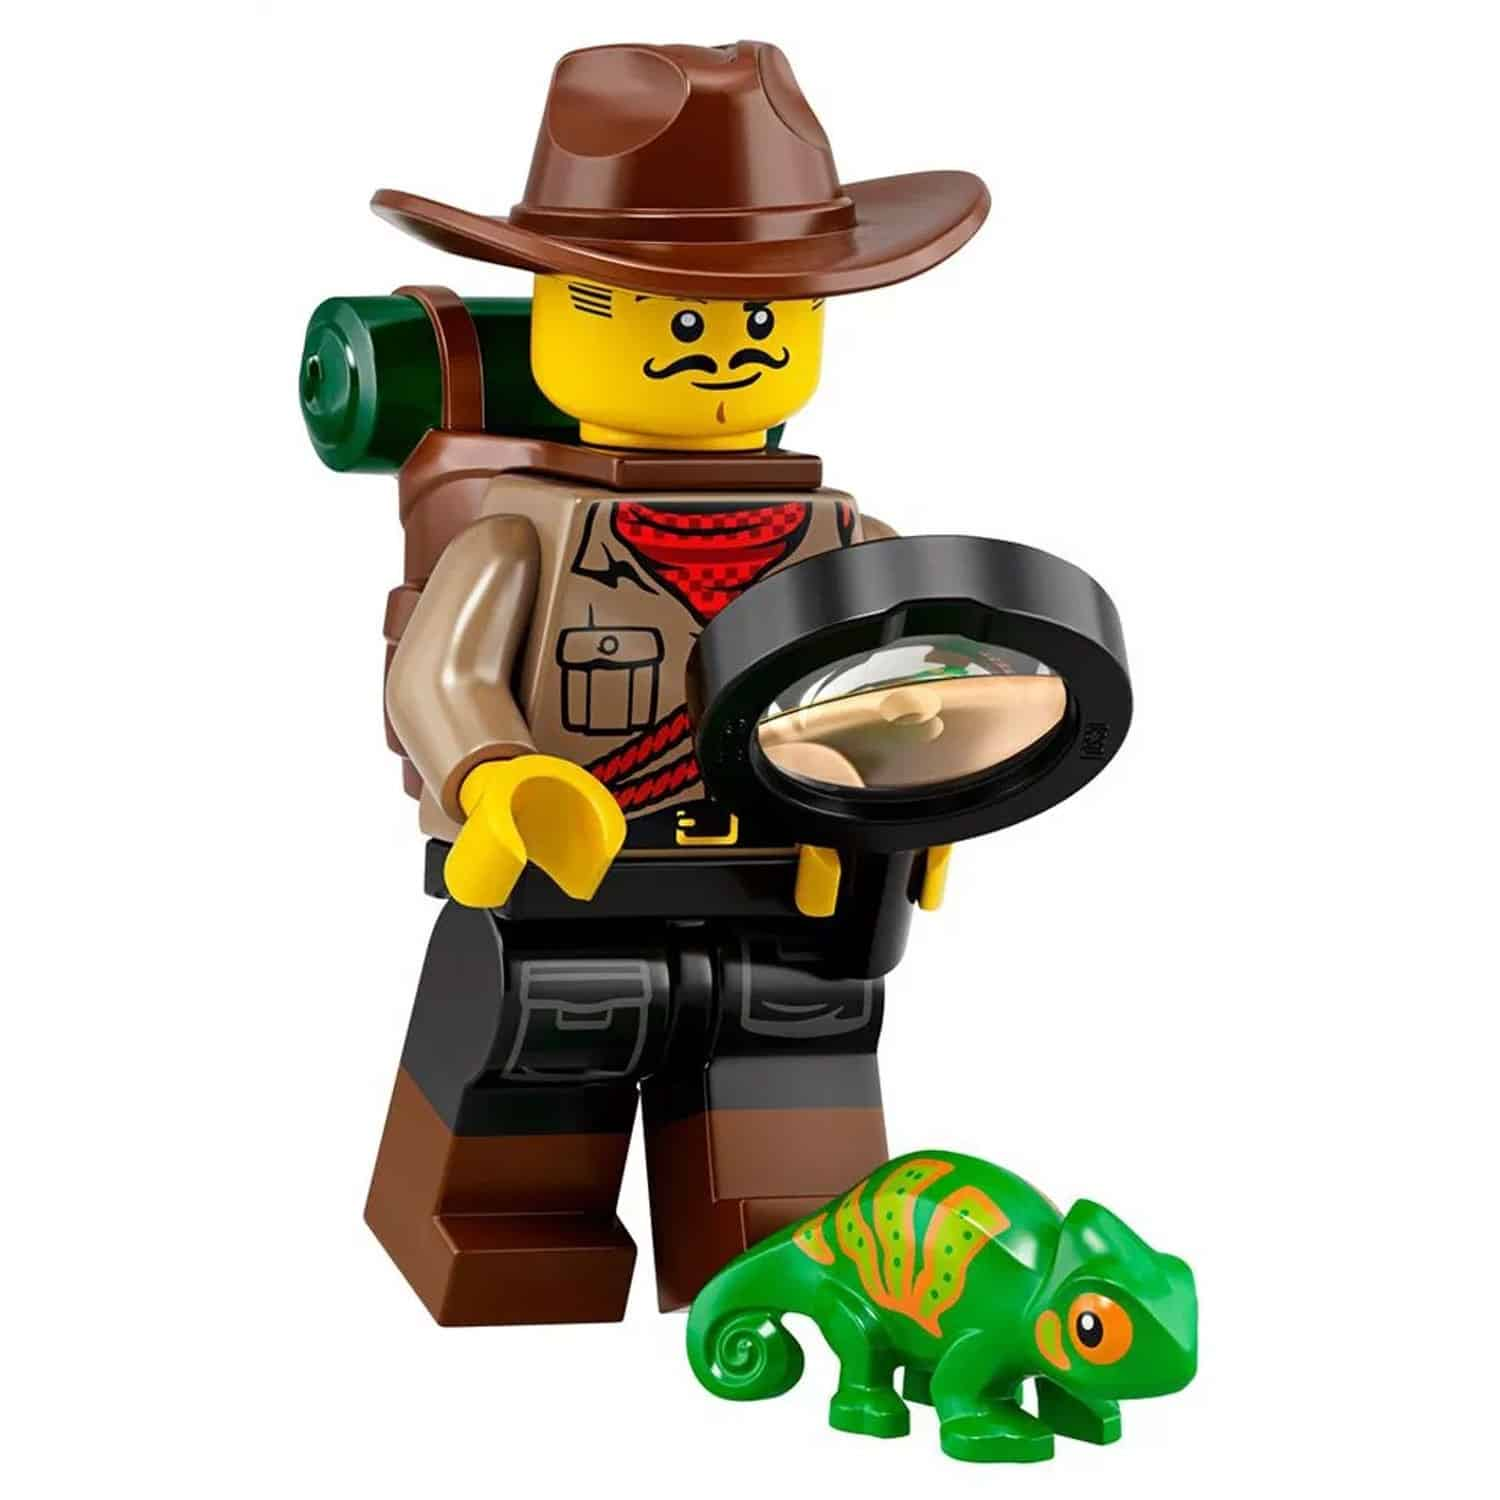 LEGO Explorer Minifigure – Series 19 CMF